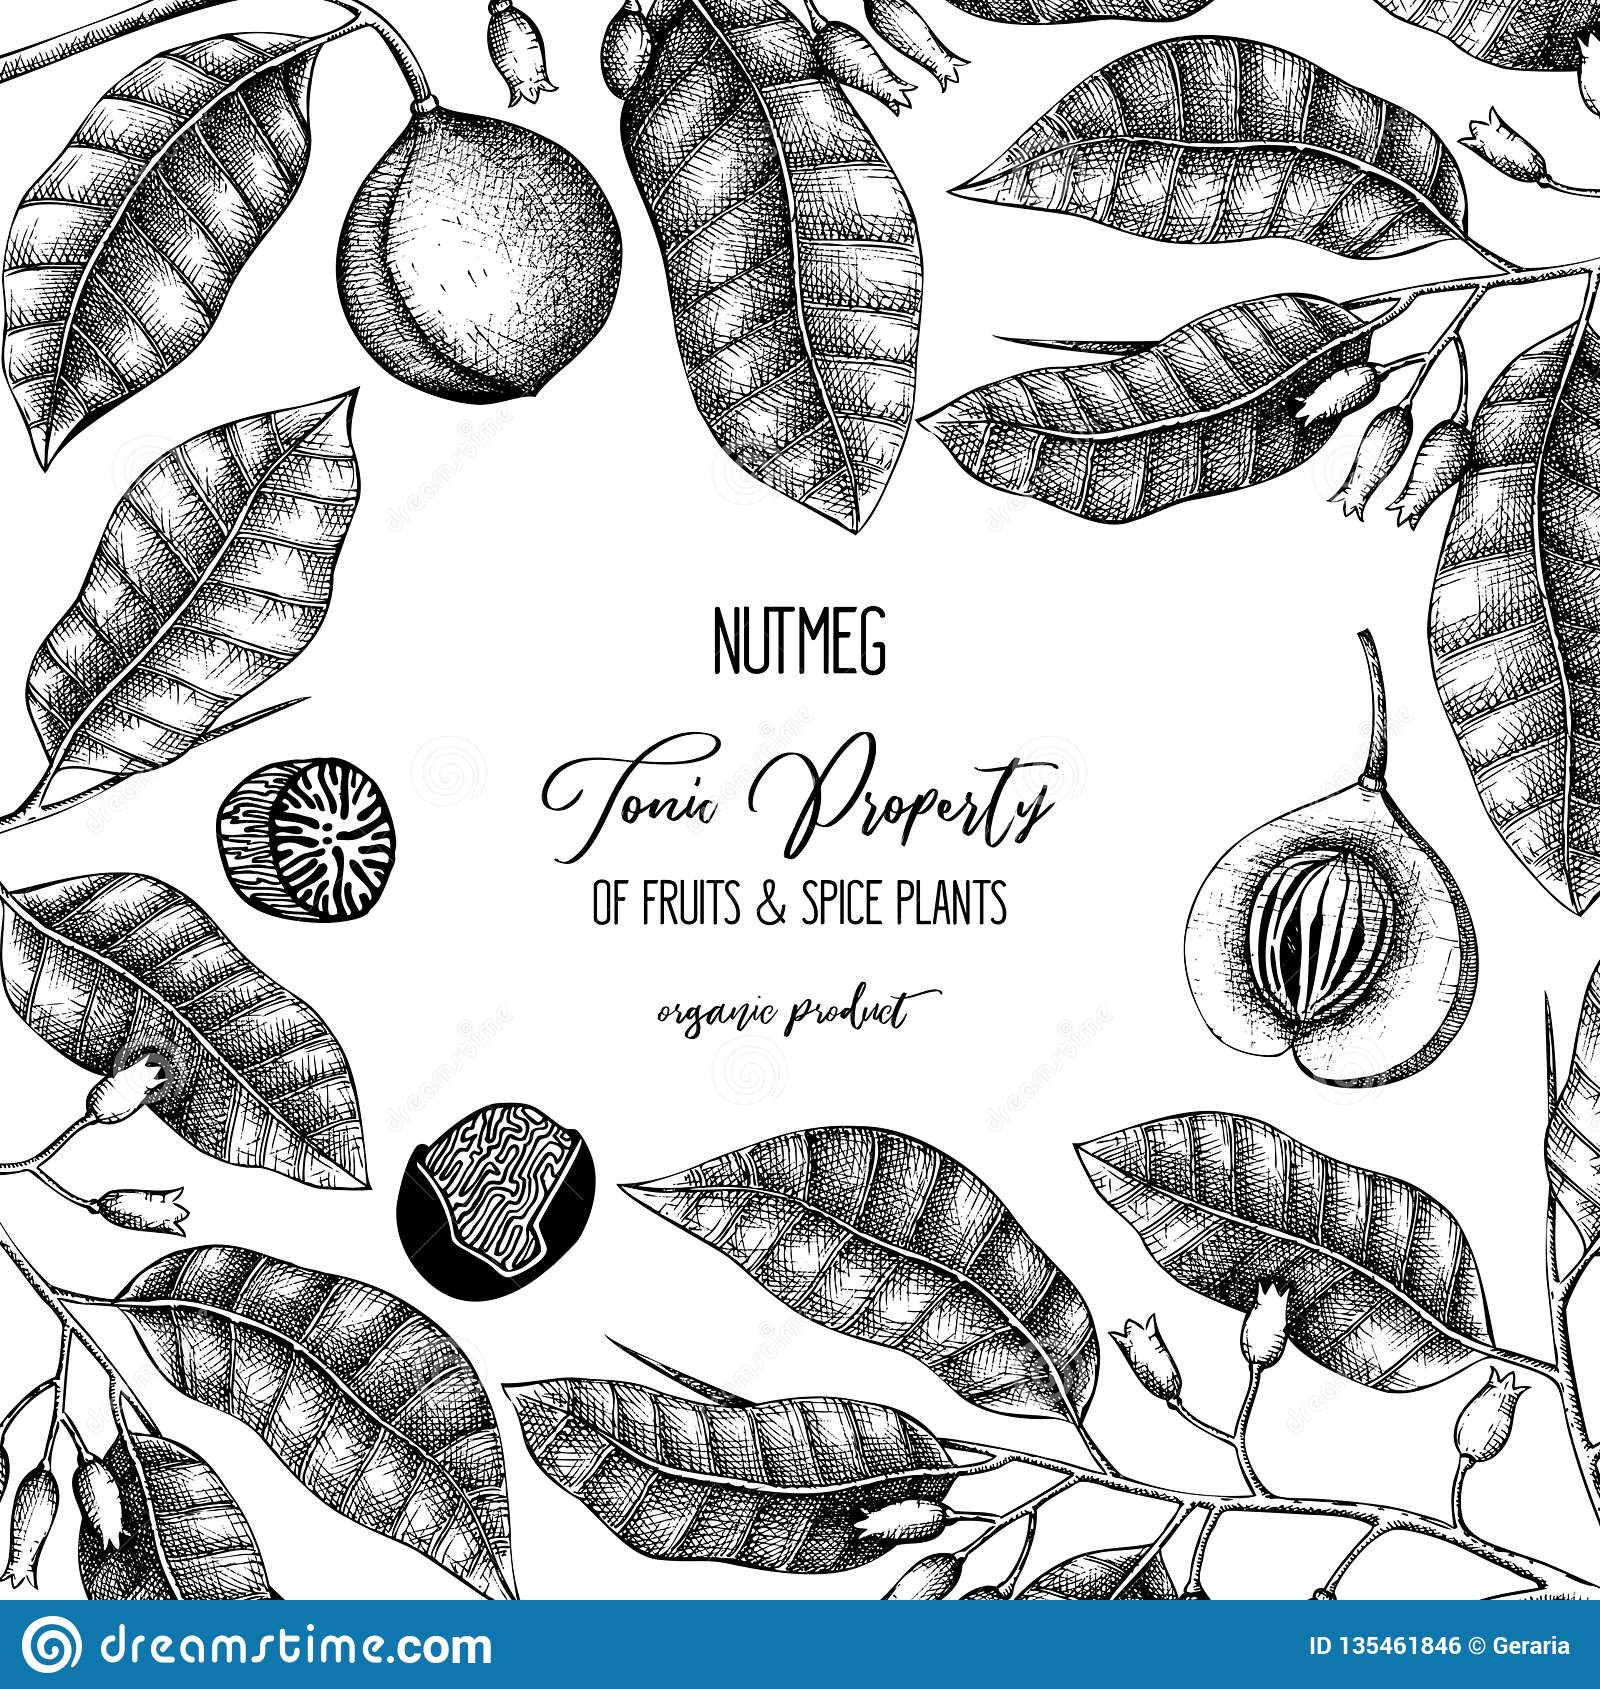 Vintage frame with hand drawn nutmeg tree illustration. Vector hand drawn spice plant design. Engraved style template with aromati